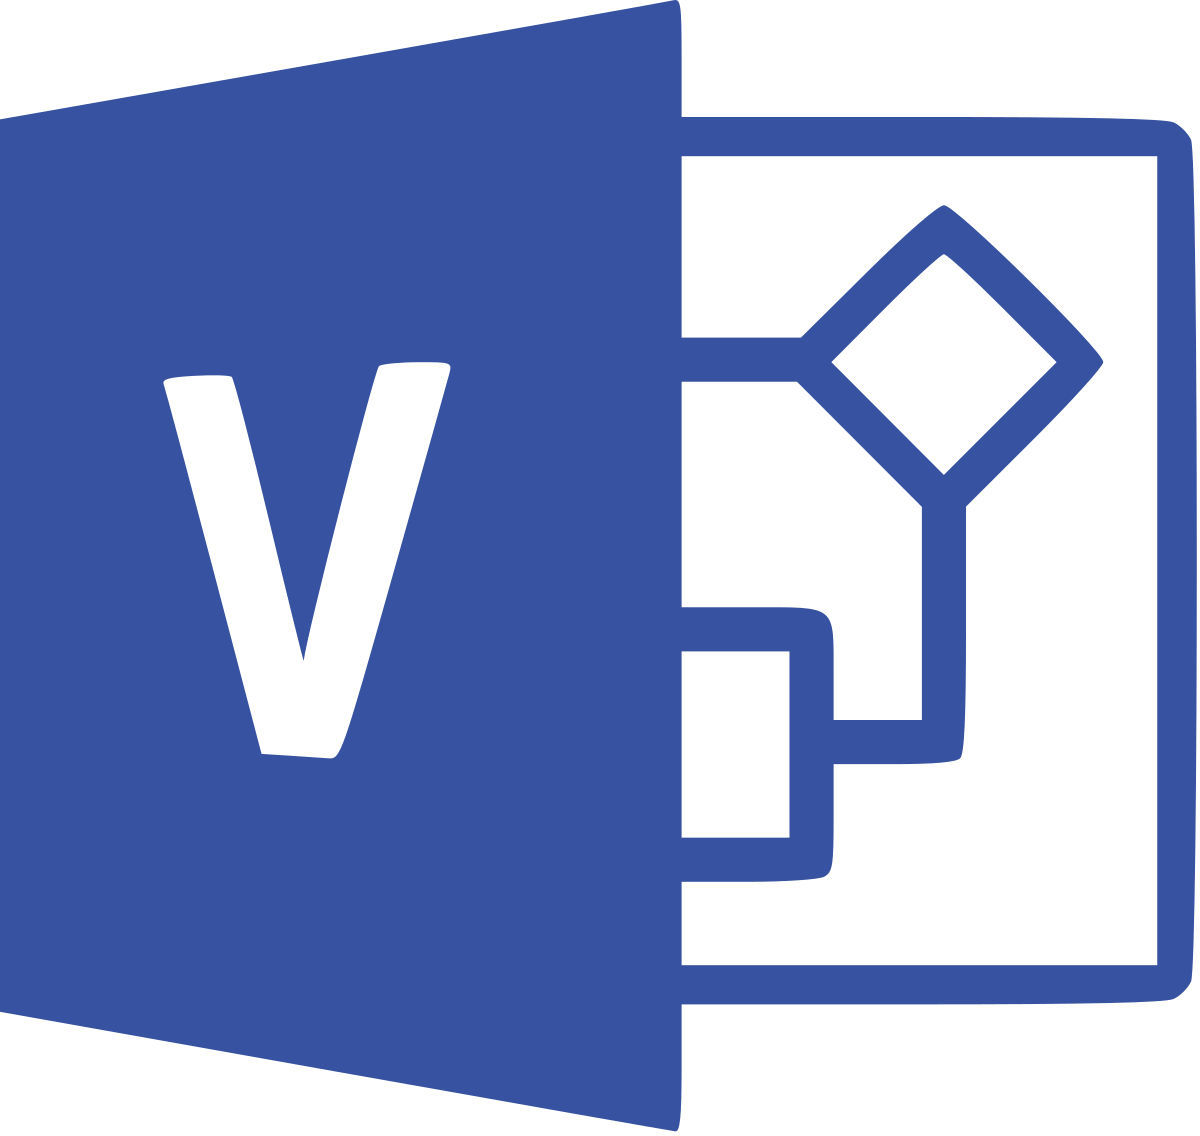 Microsoft Visio - Diagram Software : SaaSworthy.com